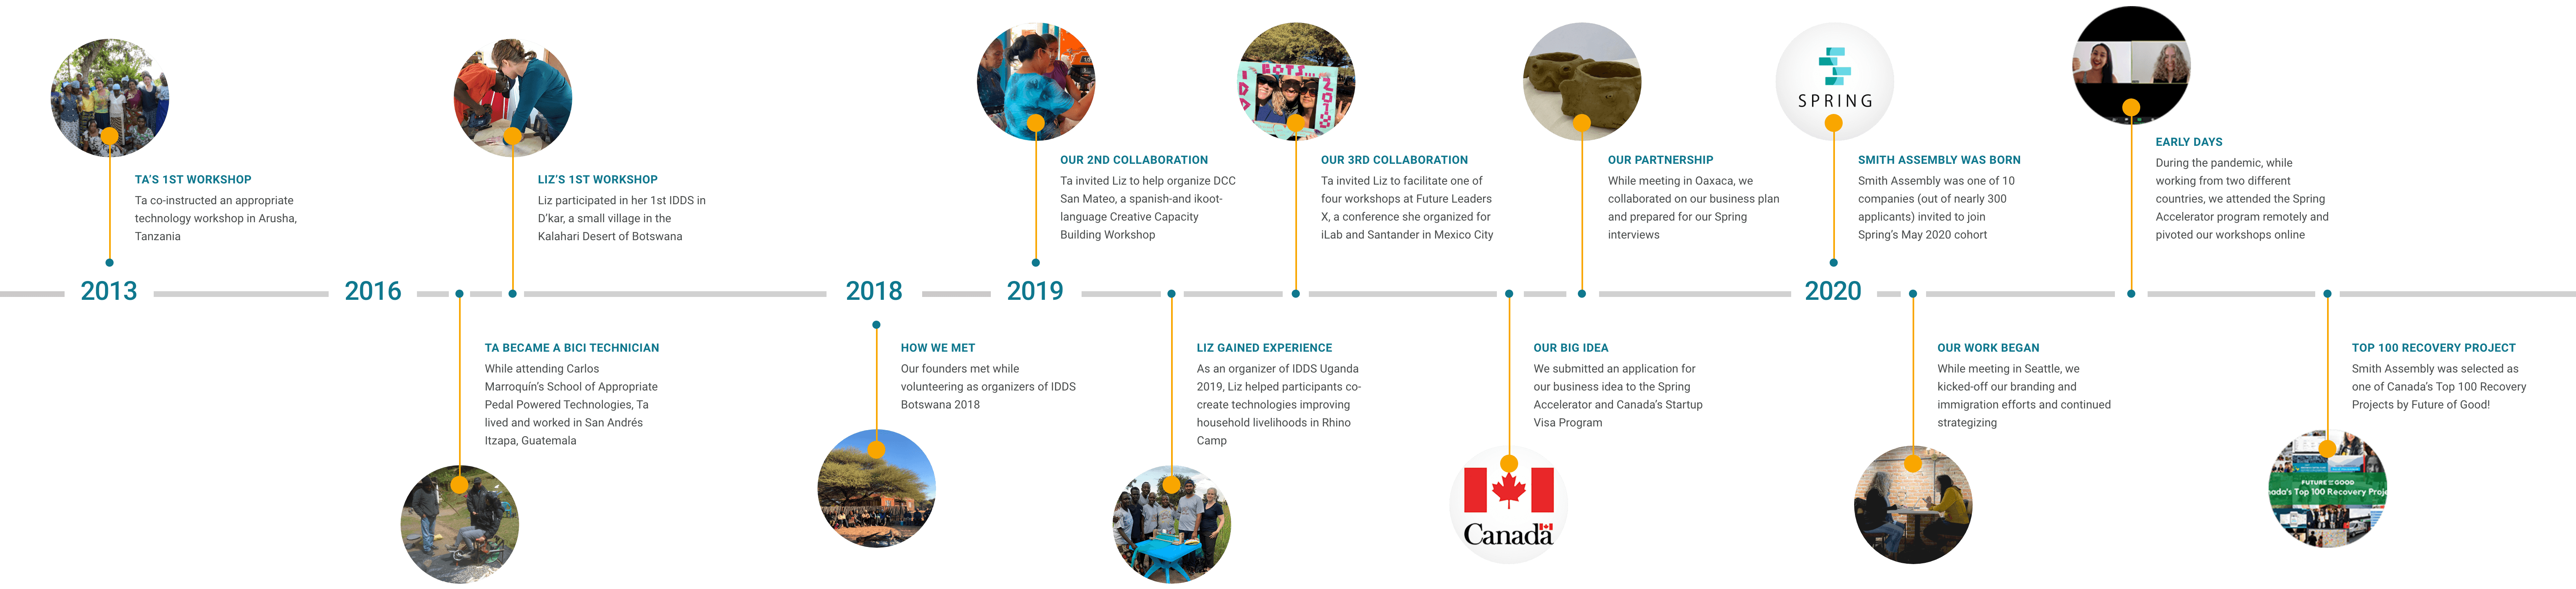 our timeline from ta's first workshop in 2013 to smith assembly's founding and our selection as one of canada's top 100 recovery projects in 2020